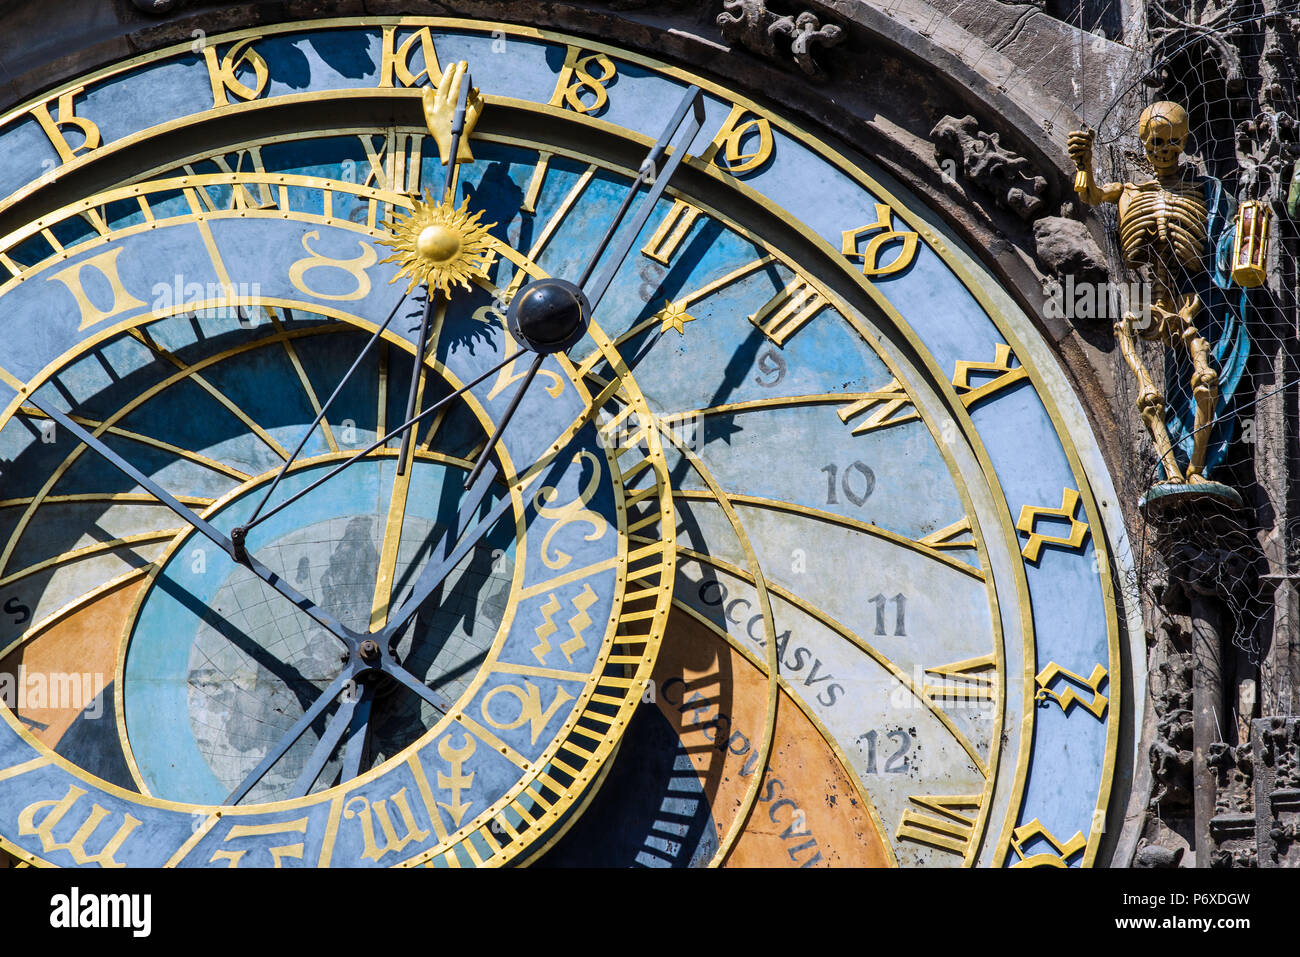 Prague astronomical clock, Prague, Bohemia, Czech Republic - Stock Image